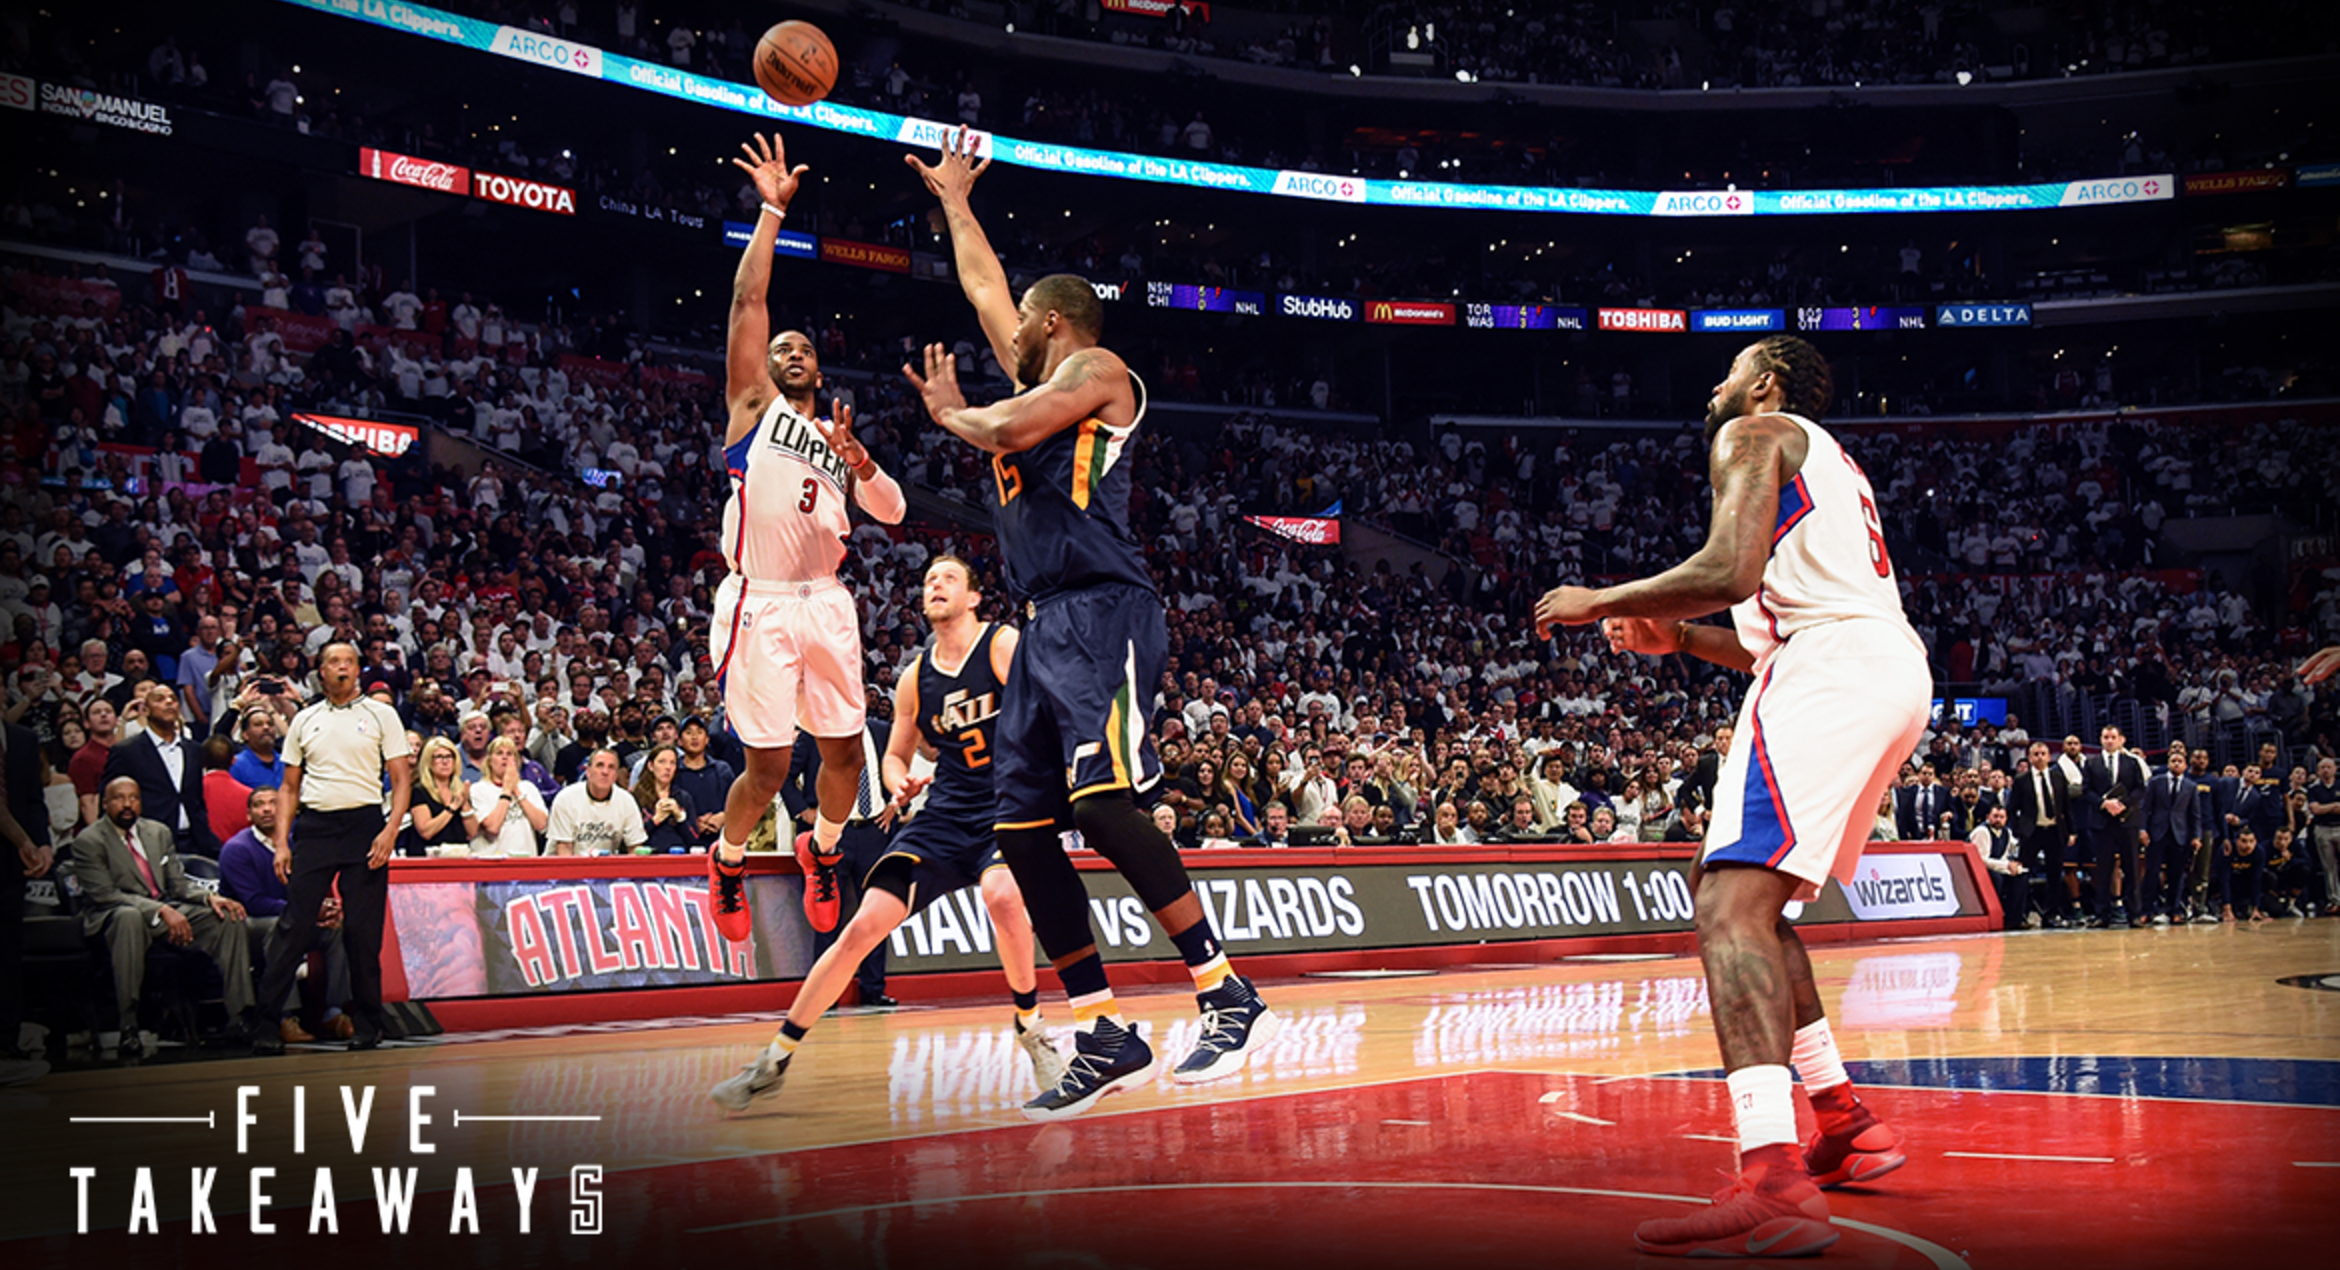 Five Takeaways From Clippers' Last-Second 97-95 Loss in Game 1 vs Jazz